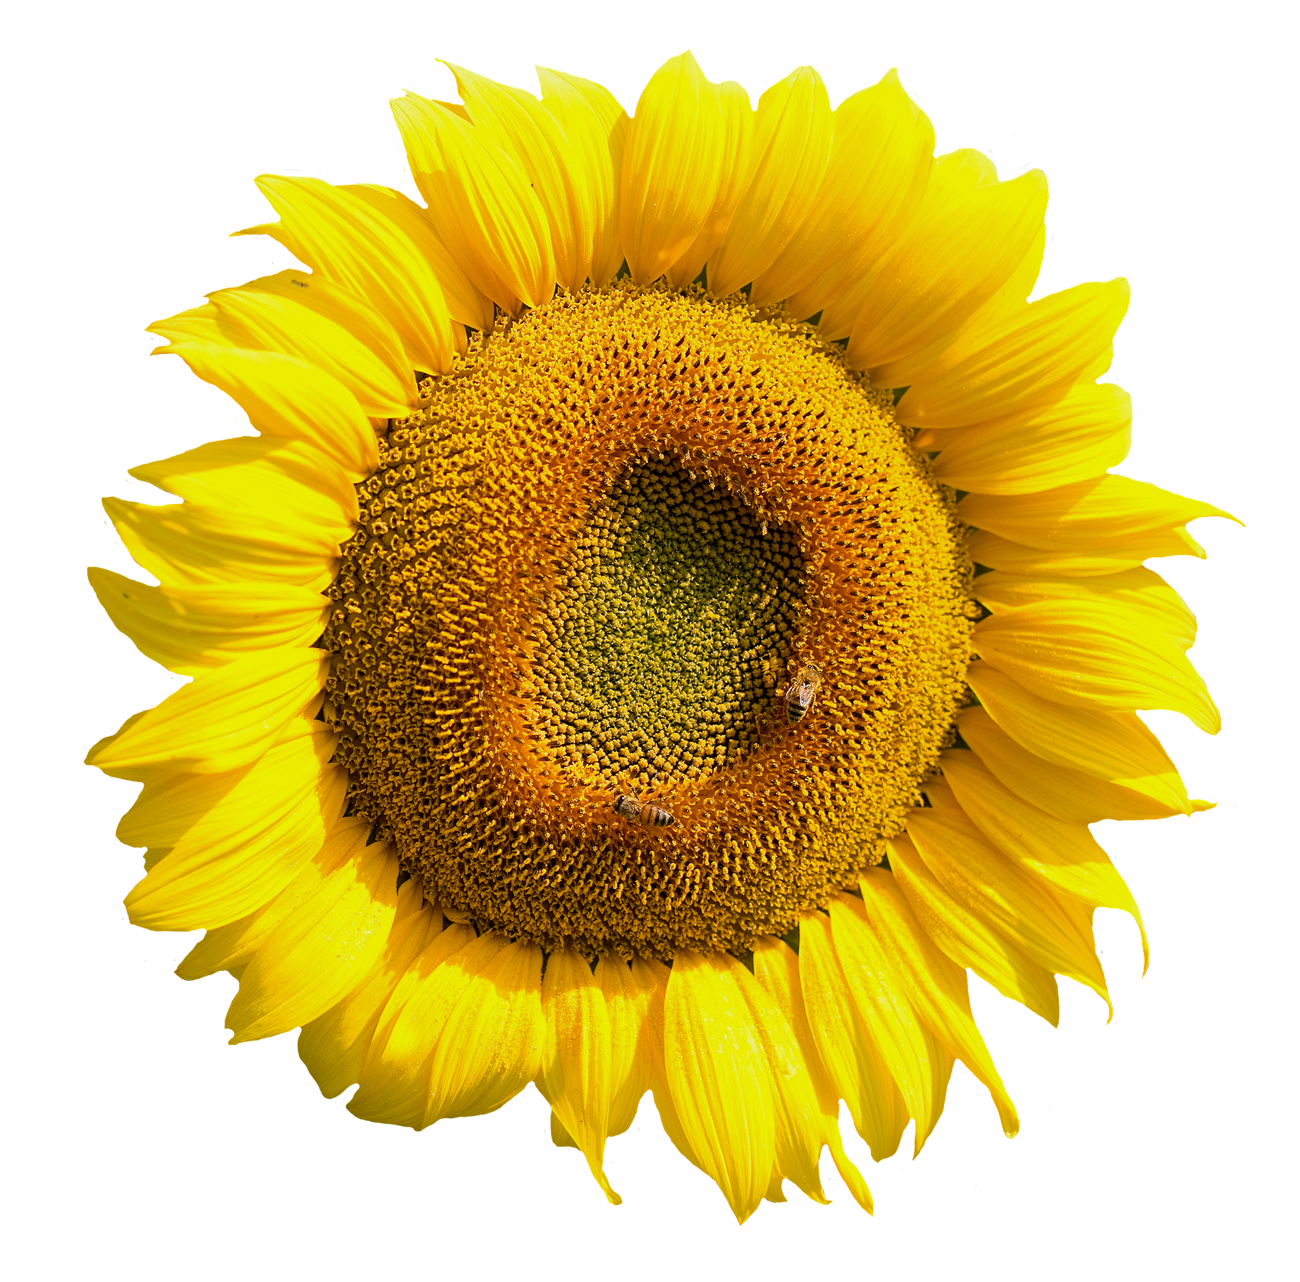 Yellow Sunflower Flower PNG Image Flower png images